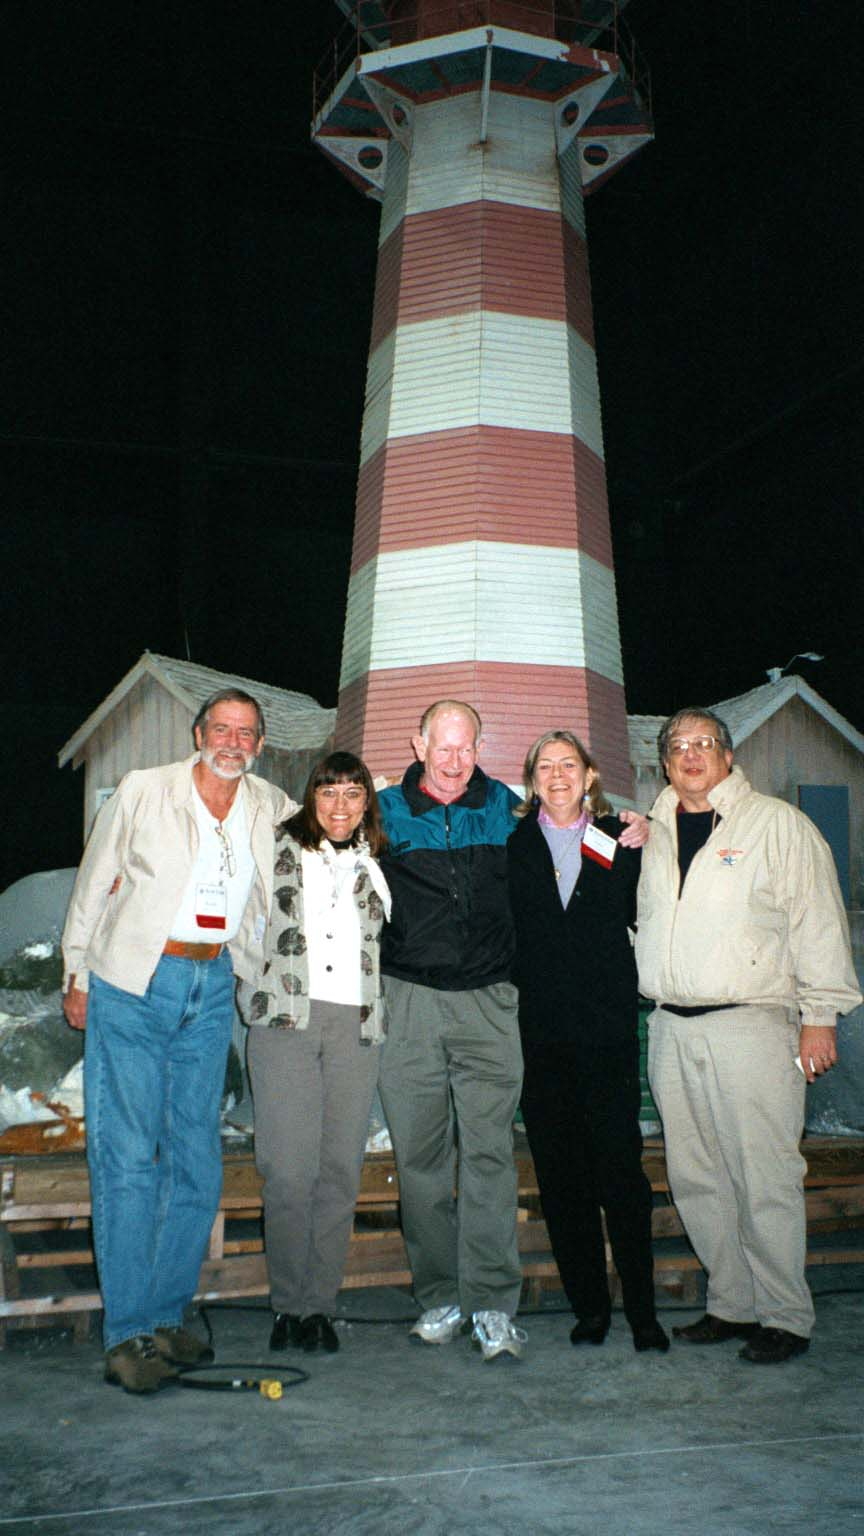 Ralph Eshelman, Candace Clifford, Jim Woodward, Anne Webster Wallace and Mike Vogel at 2001 Maritime Heritage Conference.